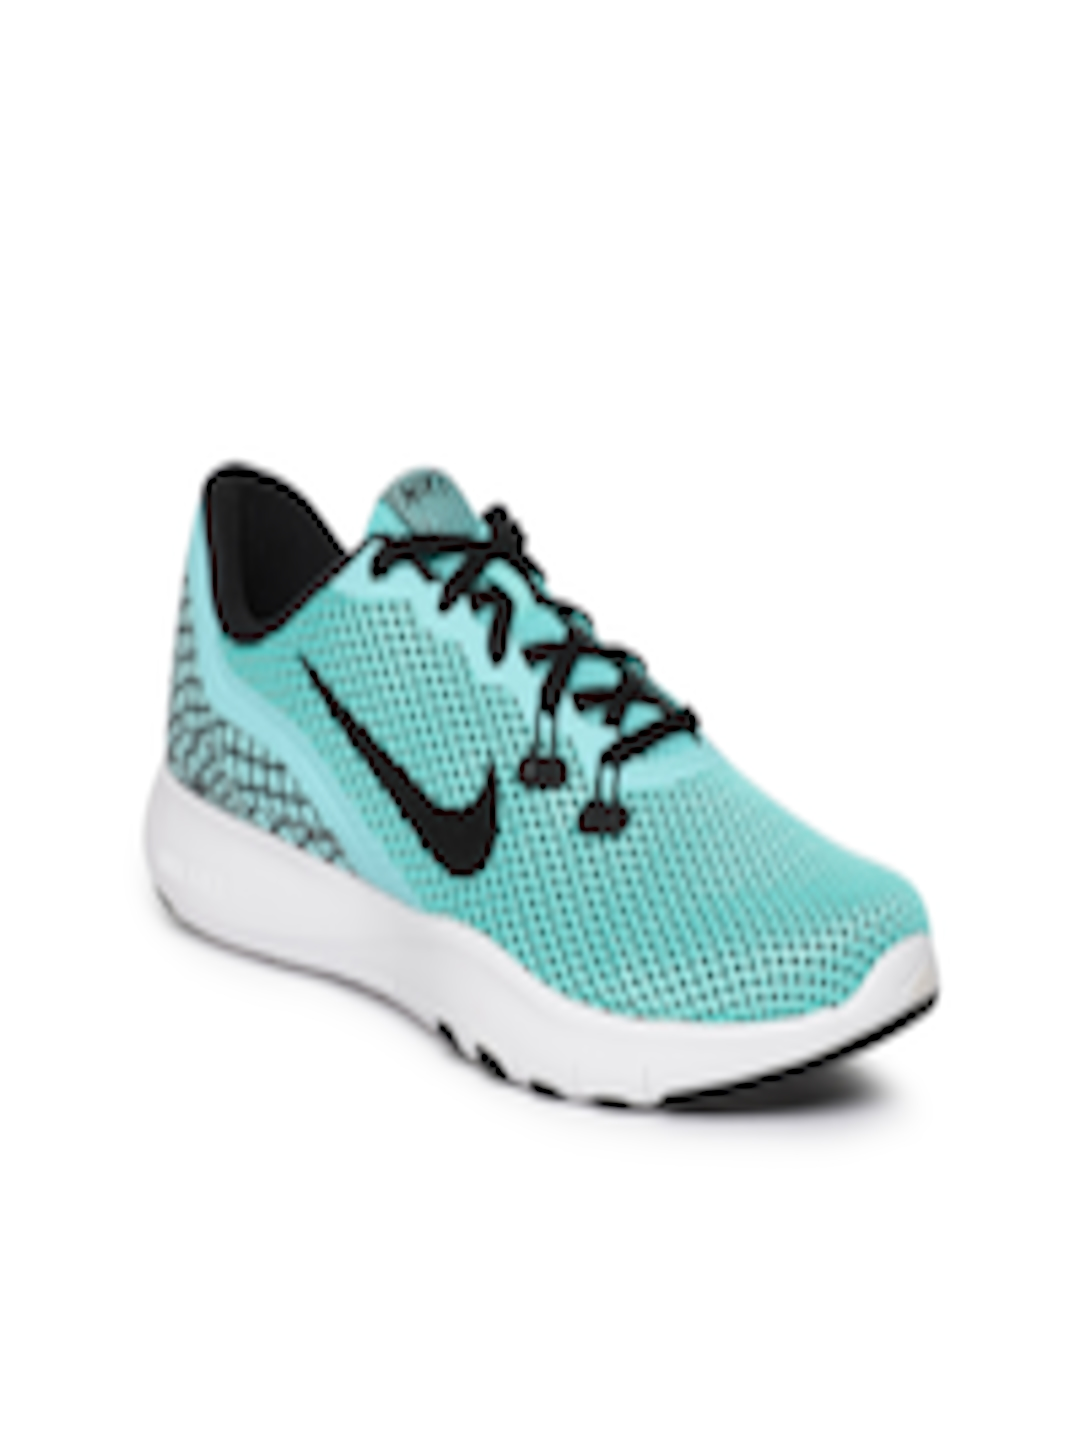 26a1b276d13e Buy Nike Women Turquoise Blue FLEX TRAINER 7 Training Or Gym Shoes ...